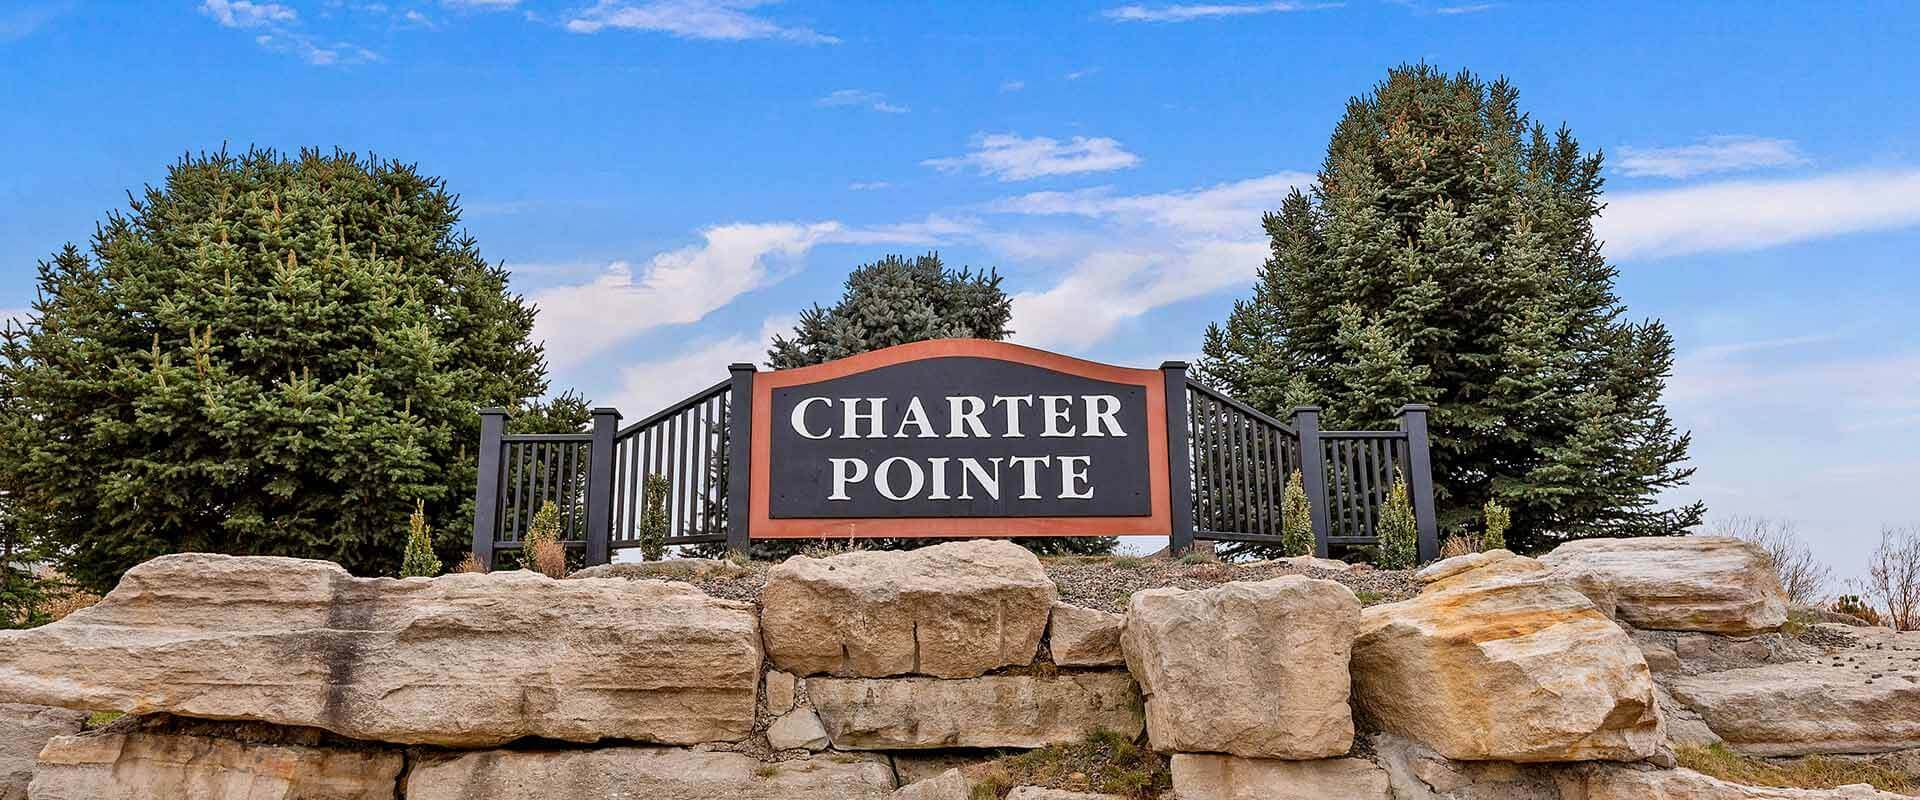 Charter-Pointe-New-Homes-and-Communities-Boise-03.jpg